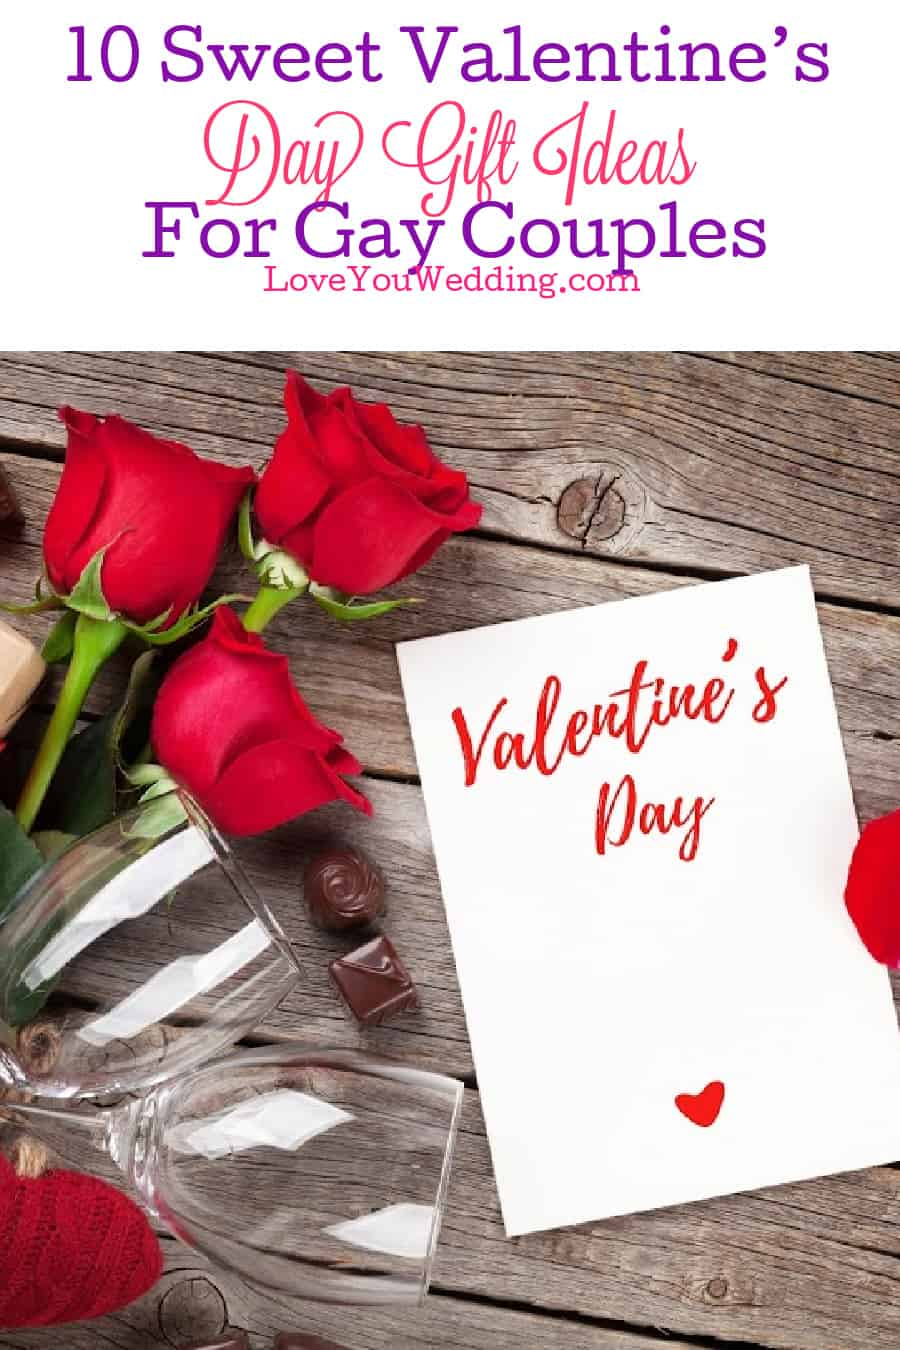 Looking for some sweet Valentine's Day Gifts for gay couples? We found 10 amazing ideas that your honey will love! Check them out!